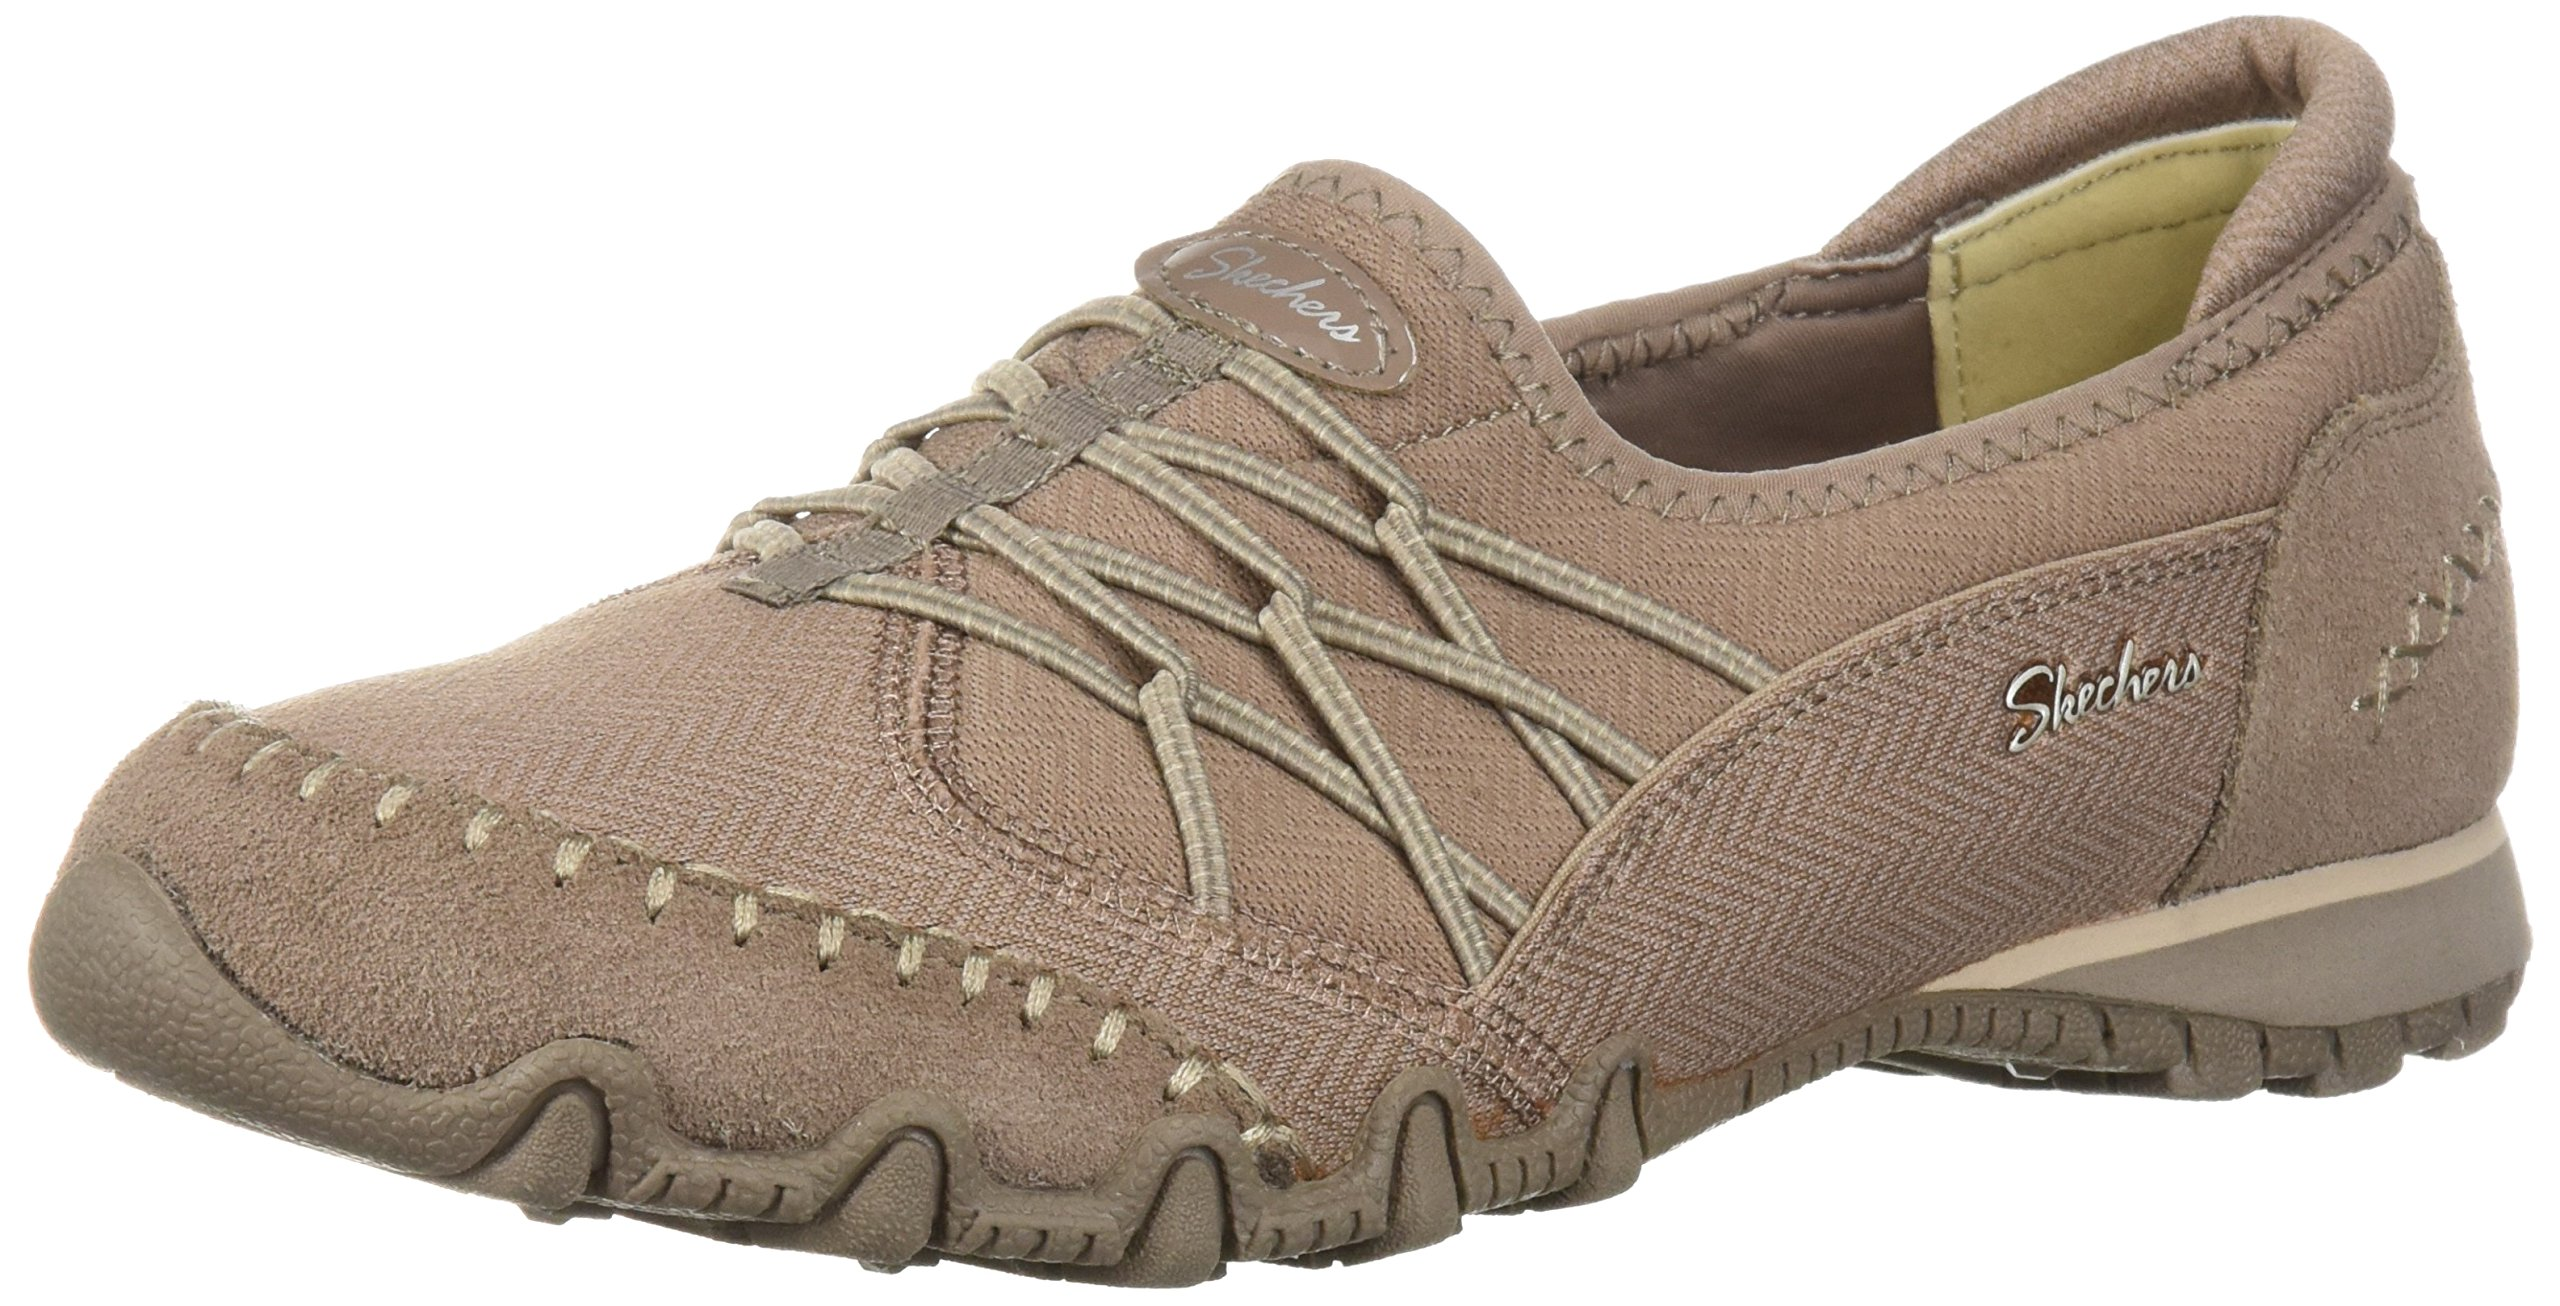 Skechers Women's Bikers Digits-Double Bungee Closure Slip-on-Relaxed Fit Sneaker, Dark Taupe, 10 M US